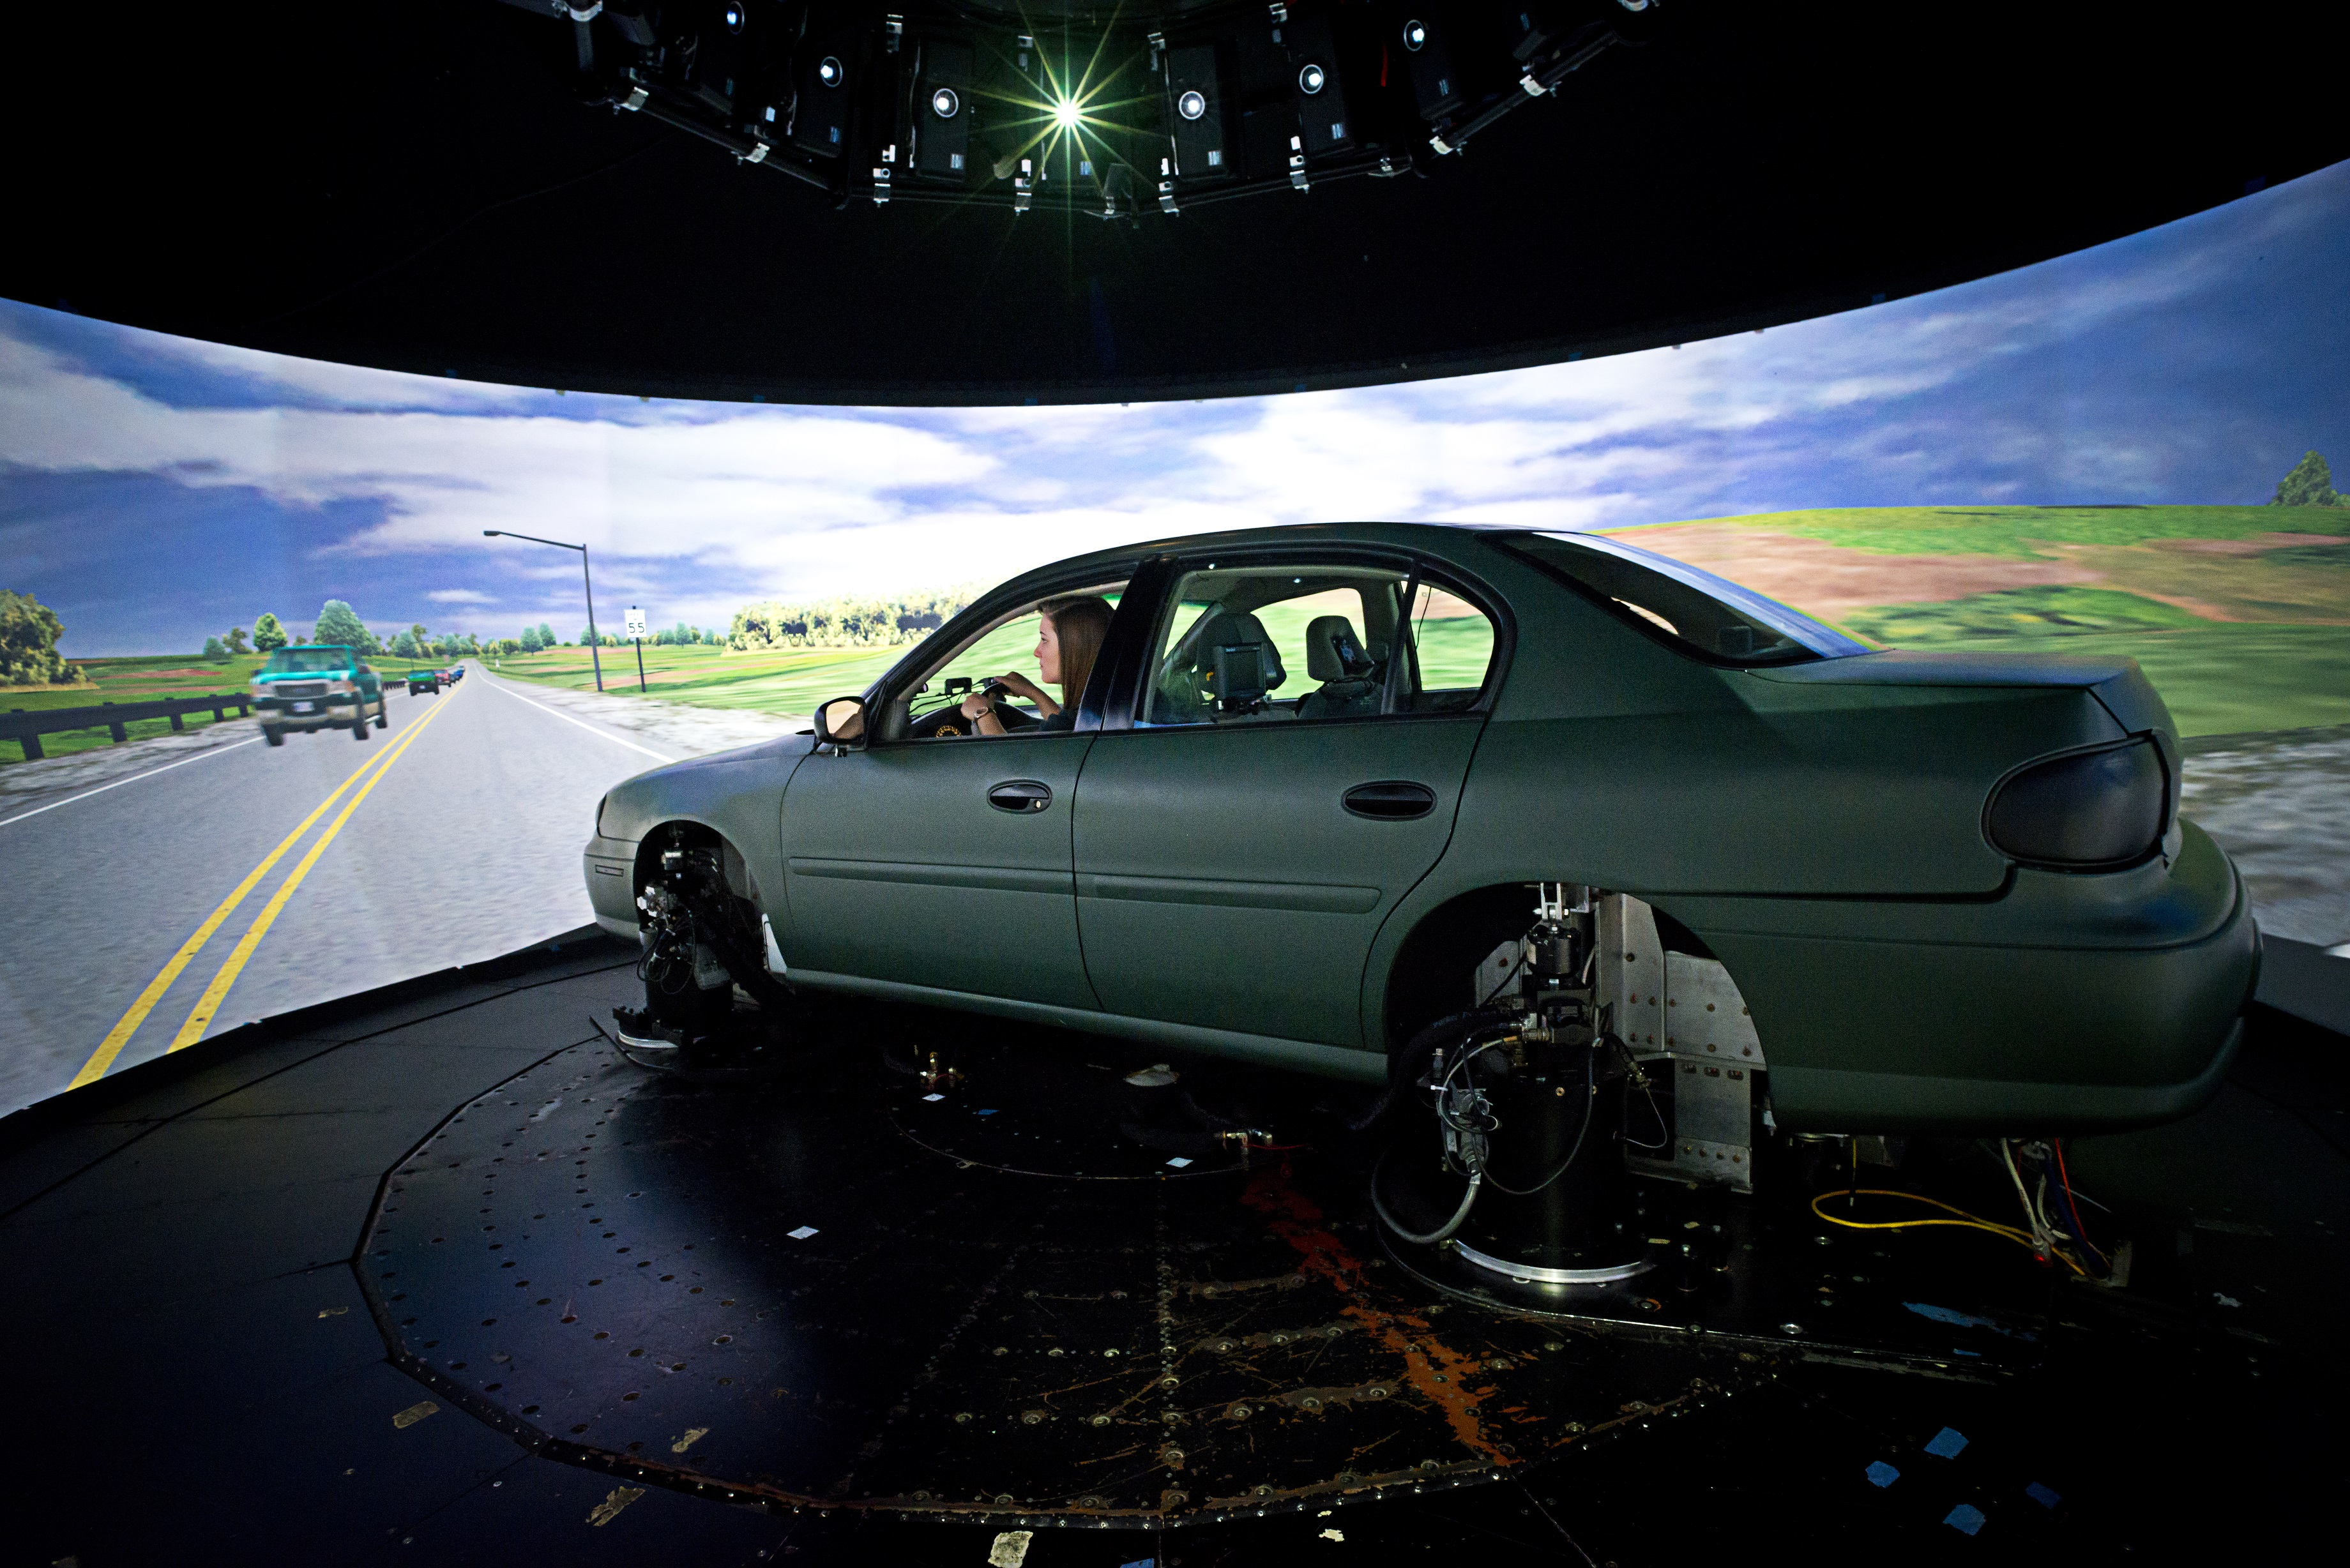 Truck Cab Inside >> The National Advanced Driving Simulator - The NADS-1